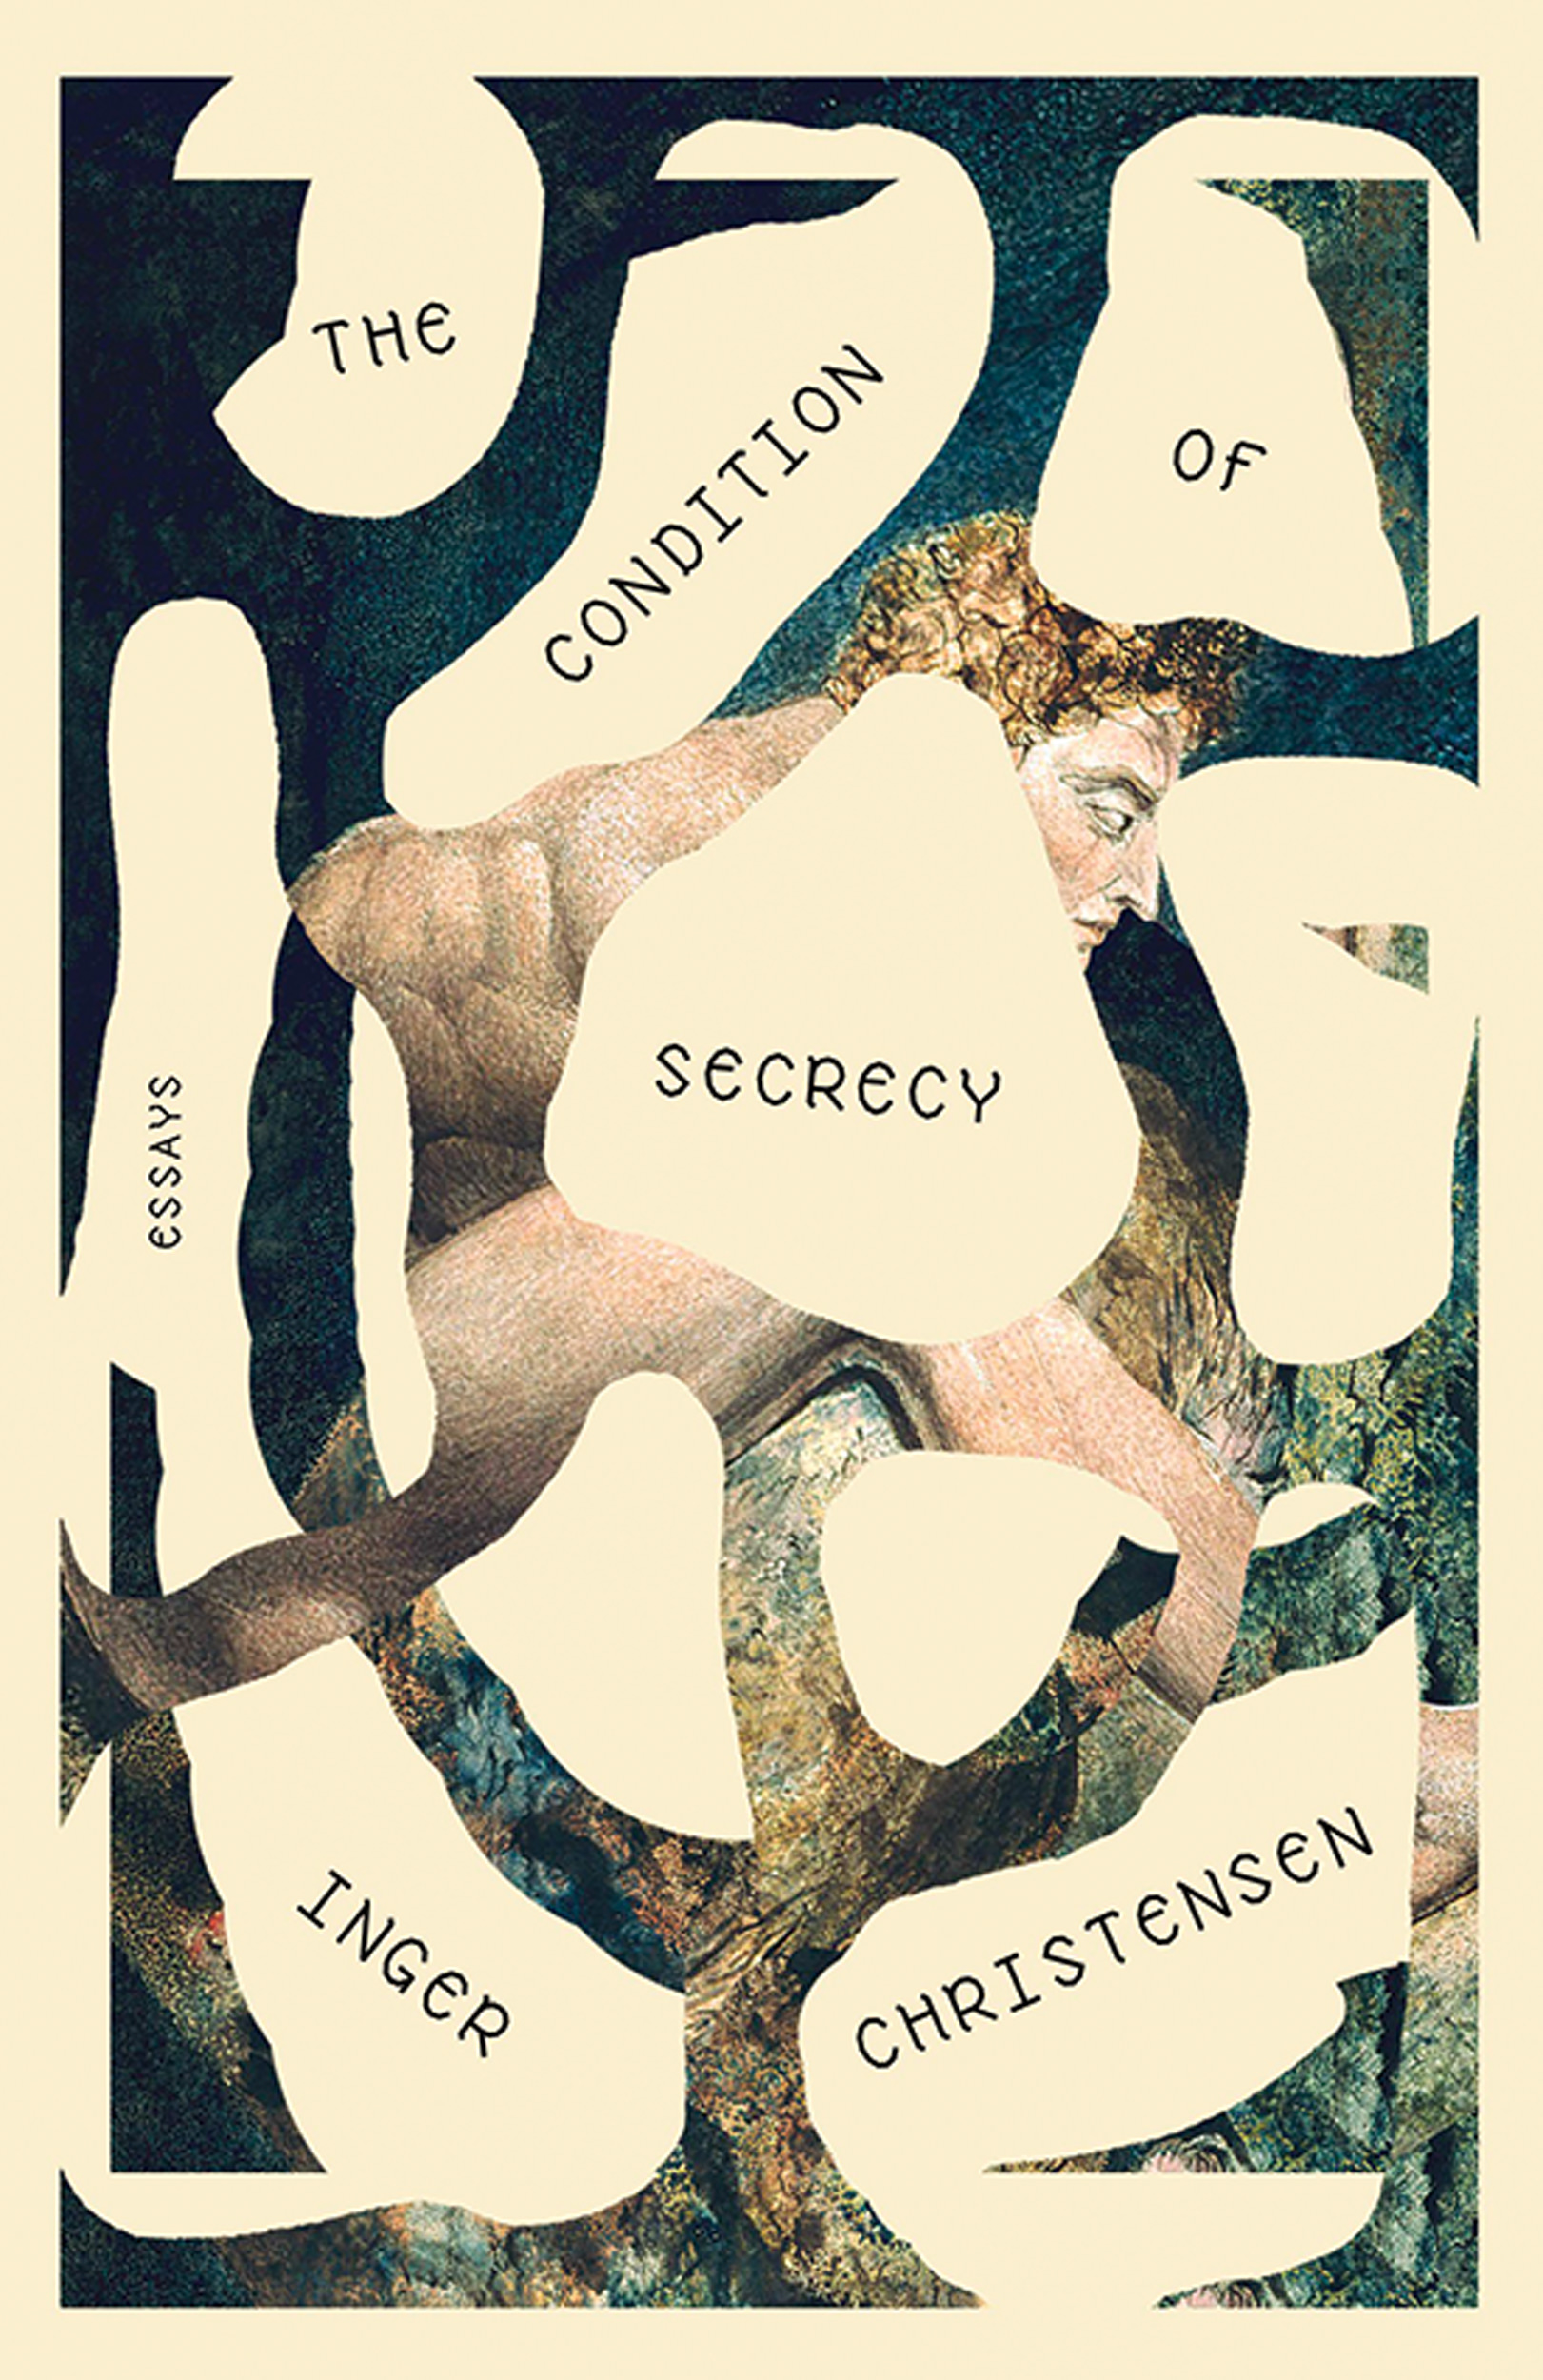 The Condition of Secrecy